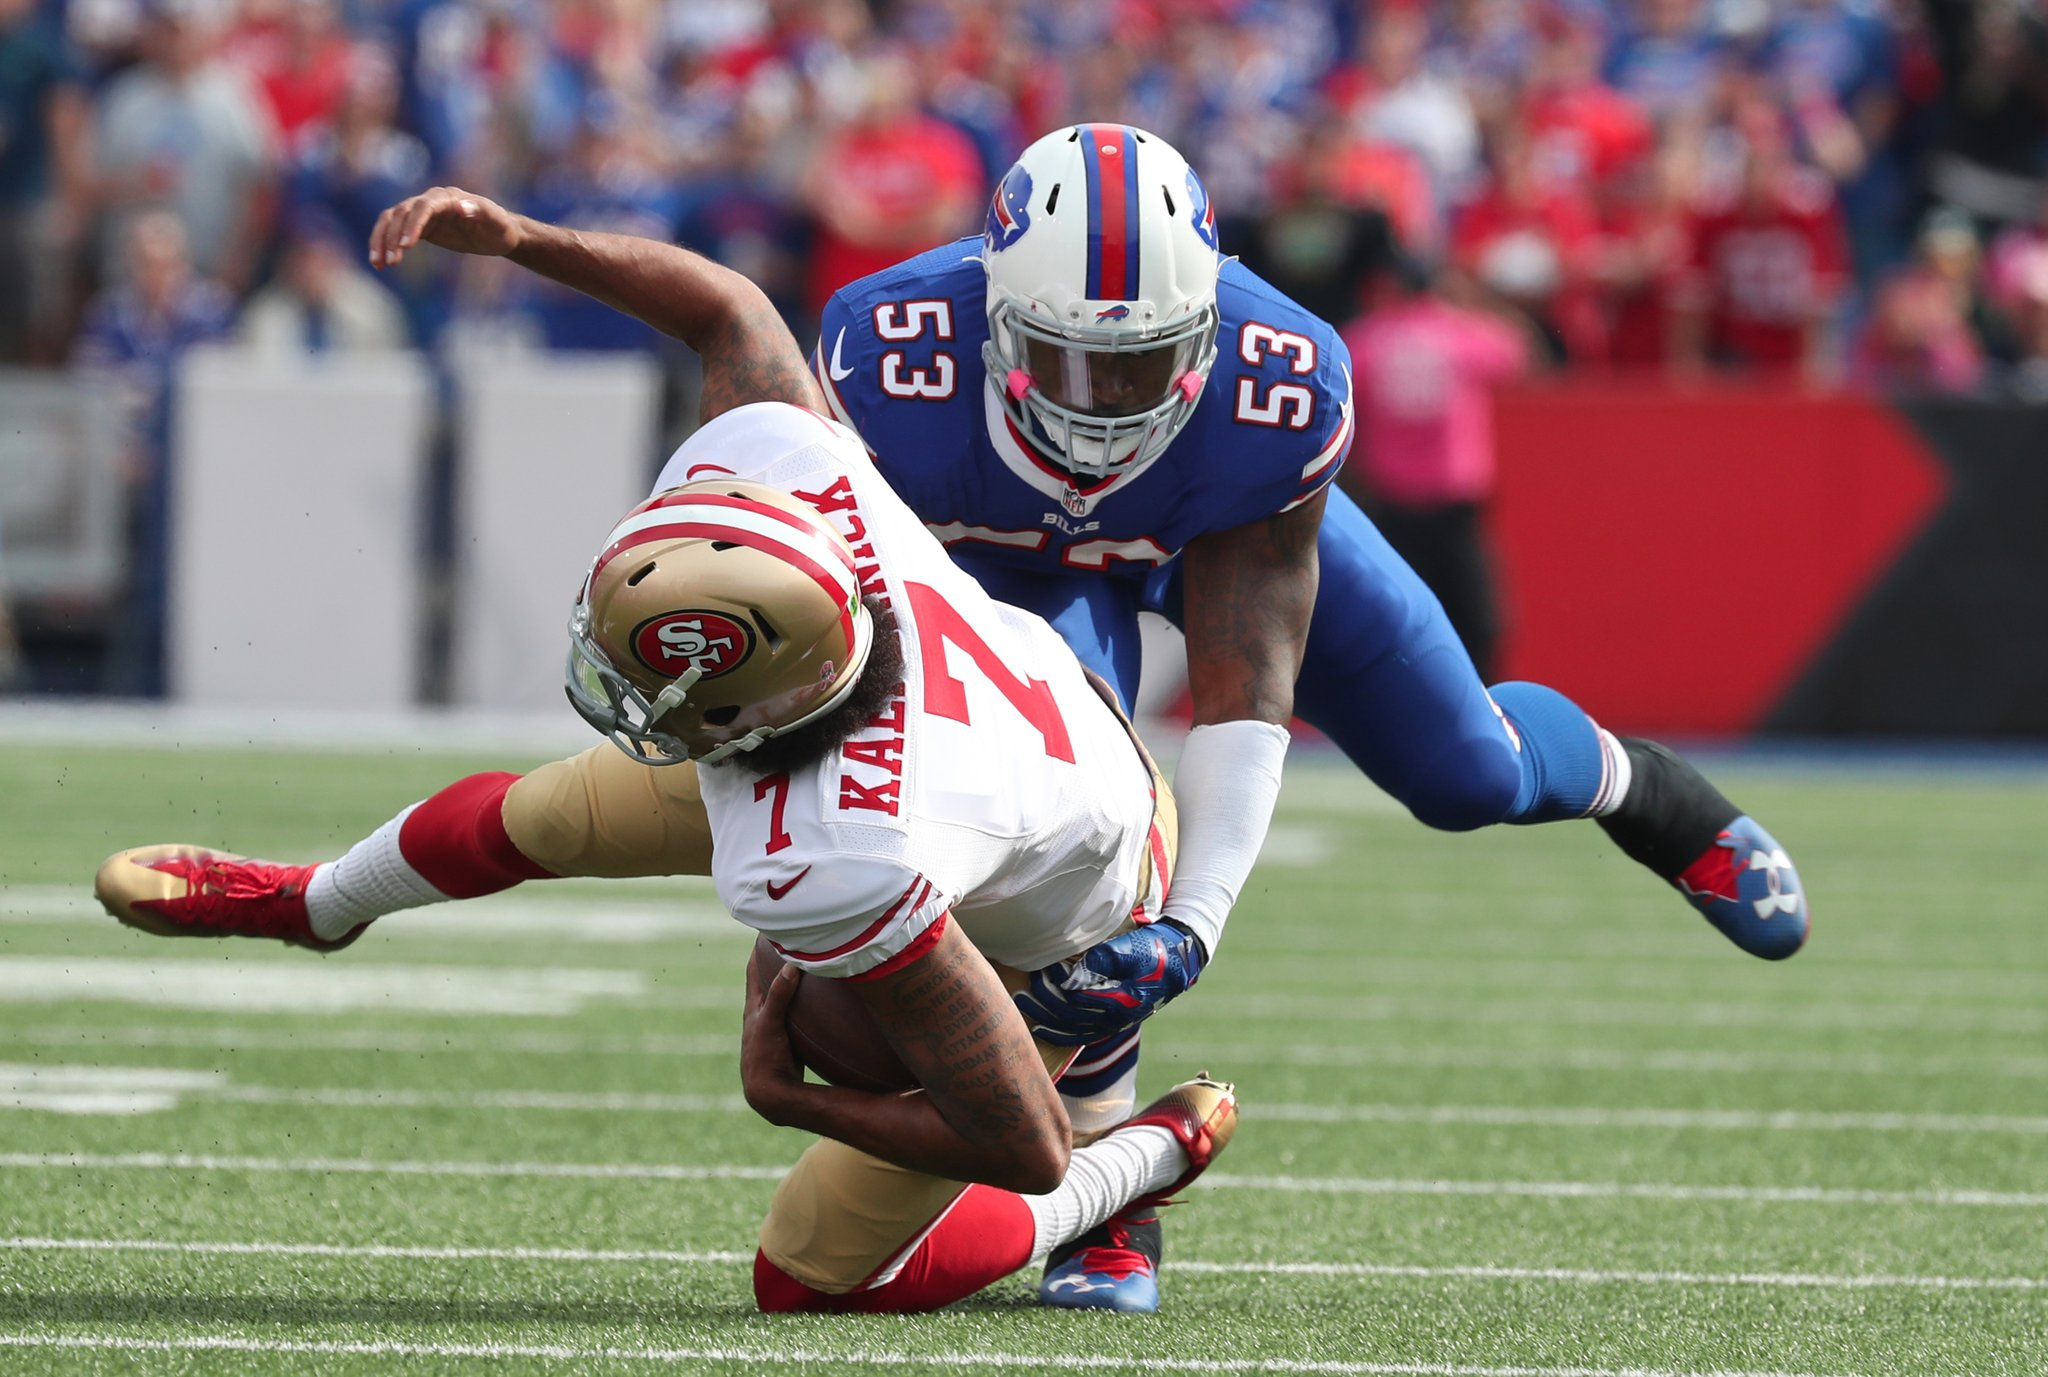 Bills linebacker Zach Brown had four sacks in 2016, including this one of San Francisco's Colin Kaepernick. (James P. McCoy/Buffalo News)